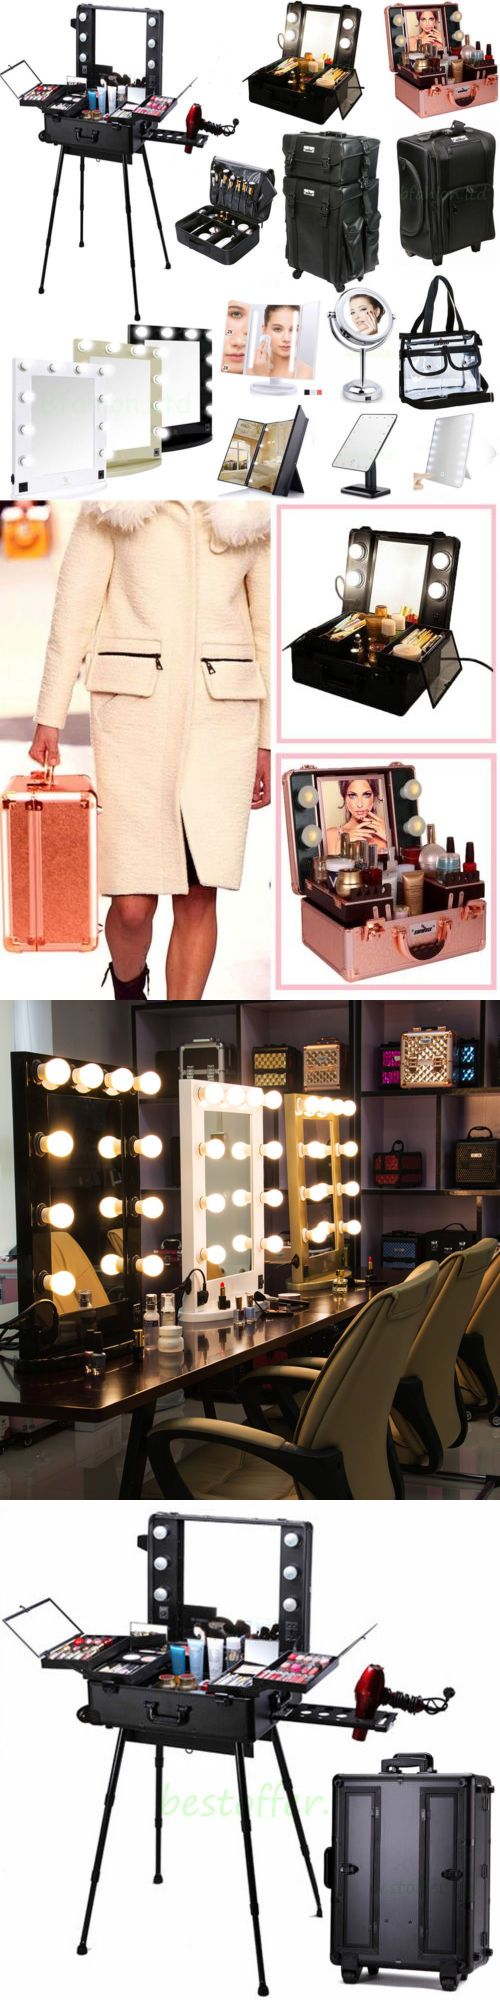 Makeup Mirrors: Professional Makeup Case Box W Light Cosmetic Bag Led Lighted Make Up Mirror -> BUY IT NOW ONLY: $189.98 on eBay!